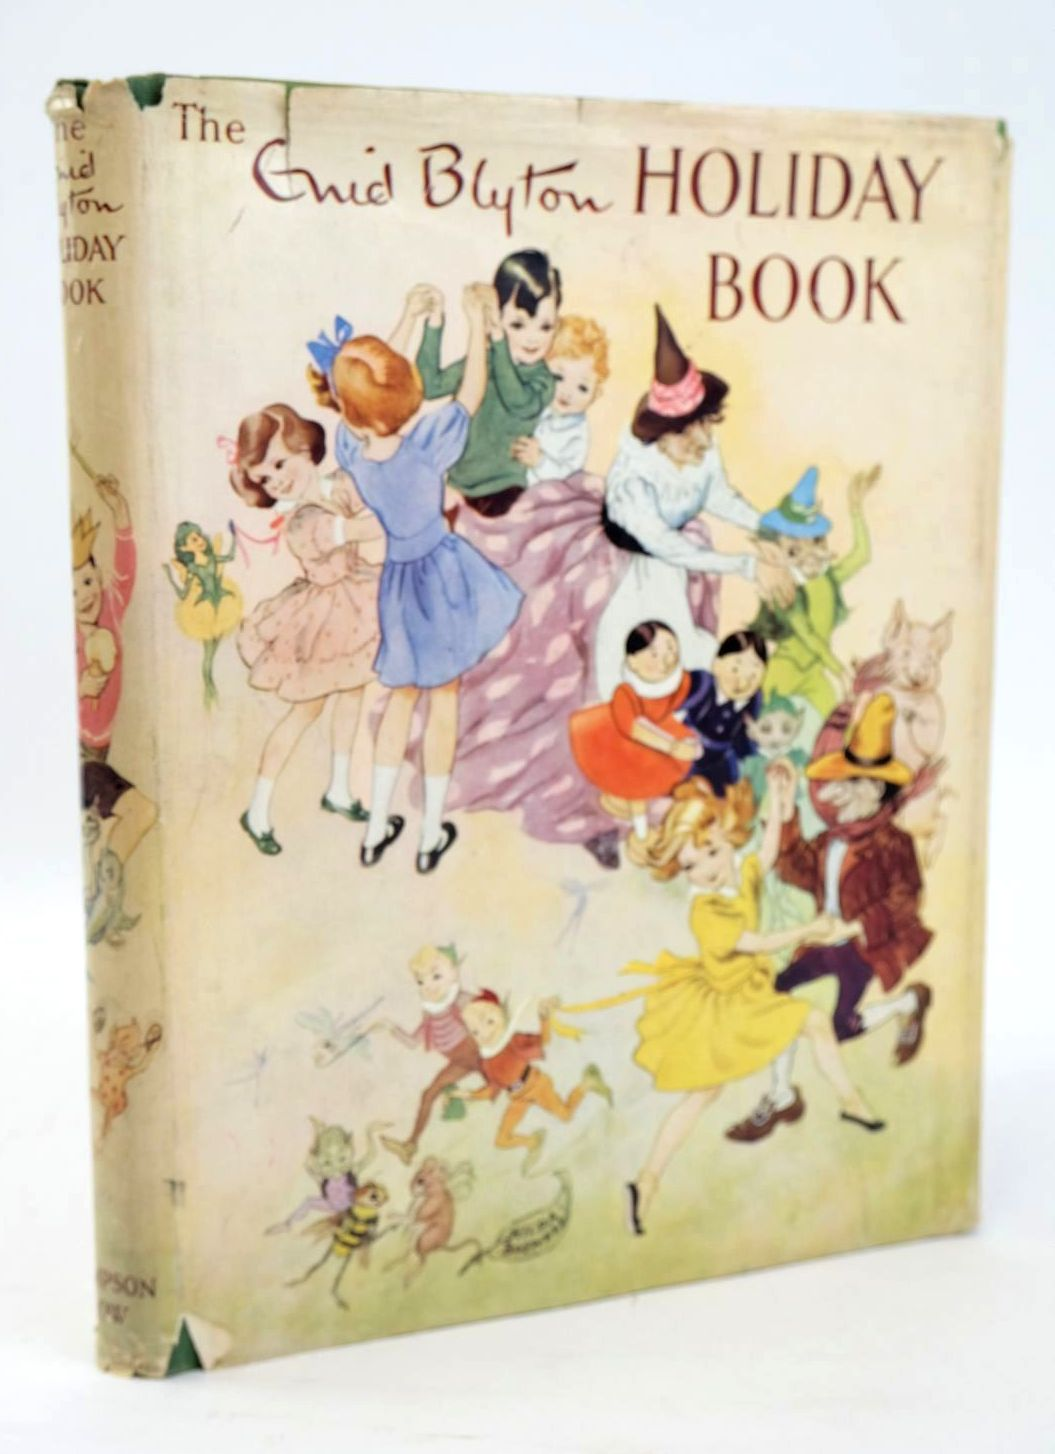 Cover of THE ENID BLYTON HOLIDAY BOOK by Enid Blyton